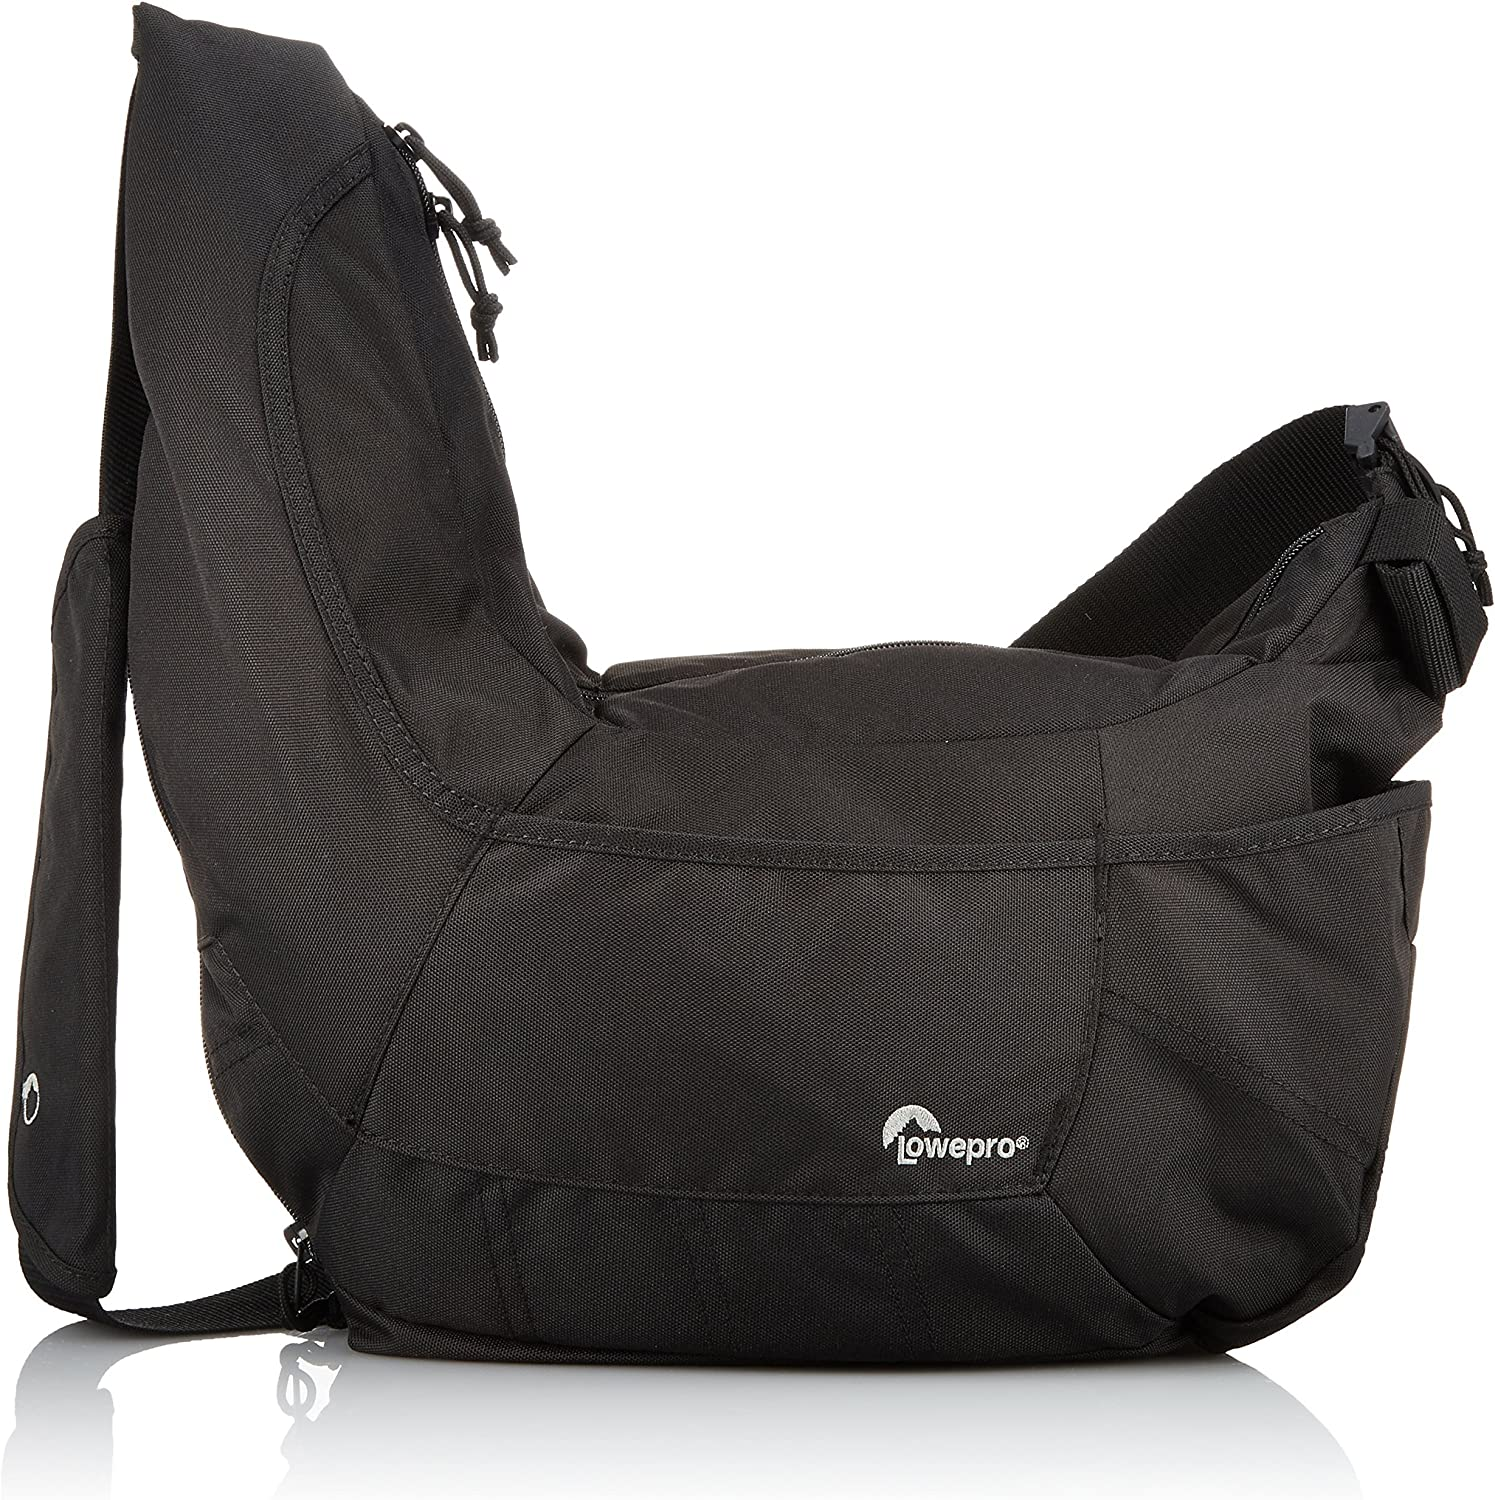 Lowepro Passport Sling III - Funda para cámaras, Negro: Amazon.es ...